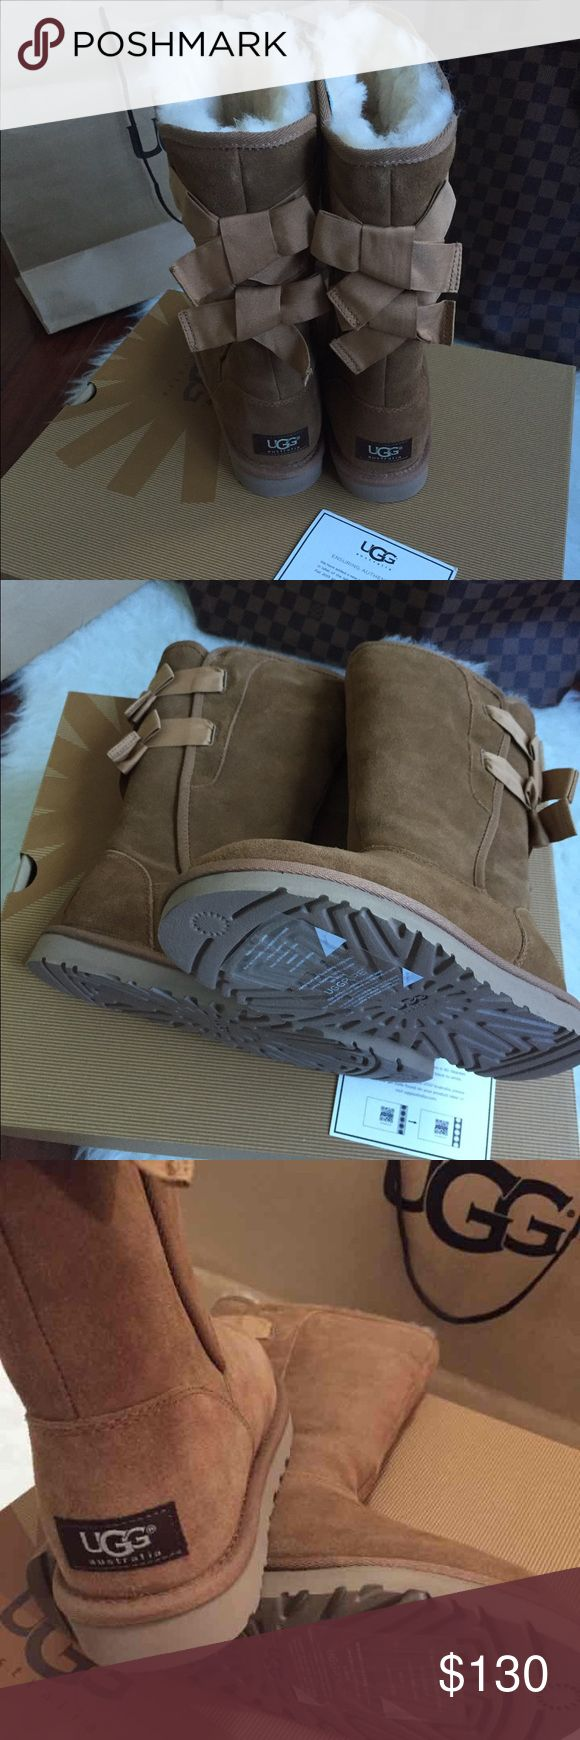 UGG women EVERLEIGH boots🐨🐨🐨 Brand new with box and tag bought at UGG store receipt available.These beauties are 100% authentic QR reader scannable. Fully lined on inside with wool will keep your feet warm this winter and many to come.UGG boots are easily cleanable and are water proof no better way to face the winter🐨🐨🐨 UGG Shoes Winter & Rain Boots